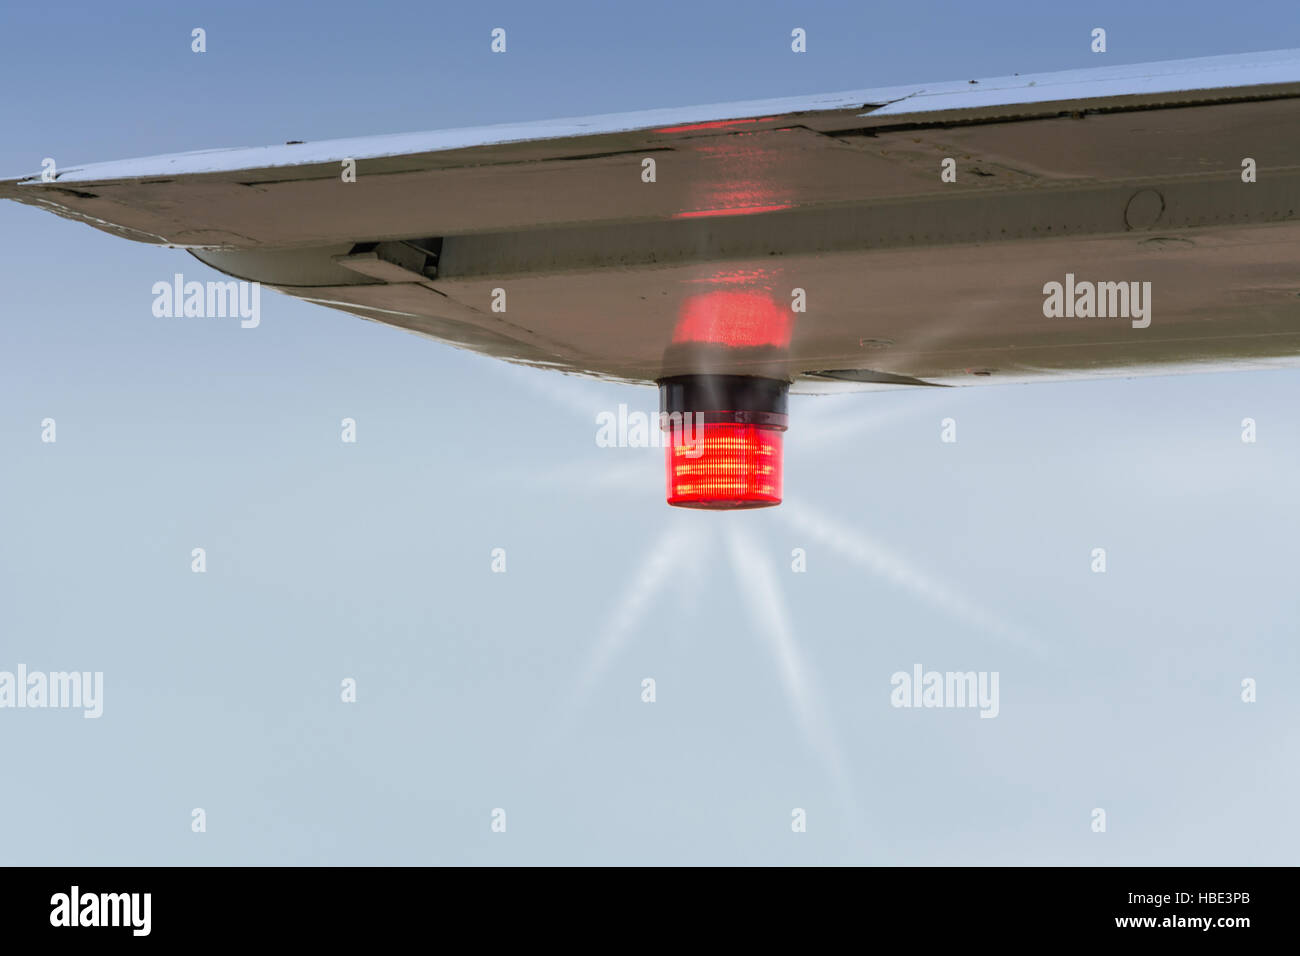 Position lights of an airplane. Stock Photo